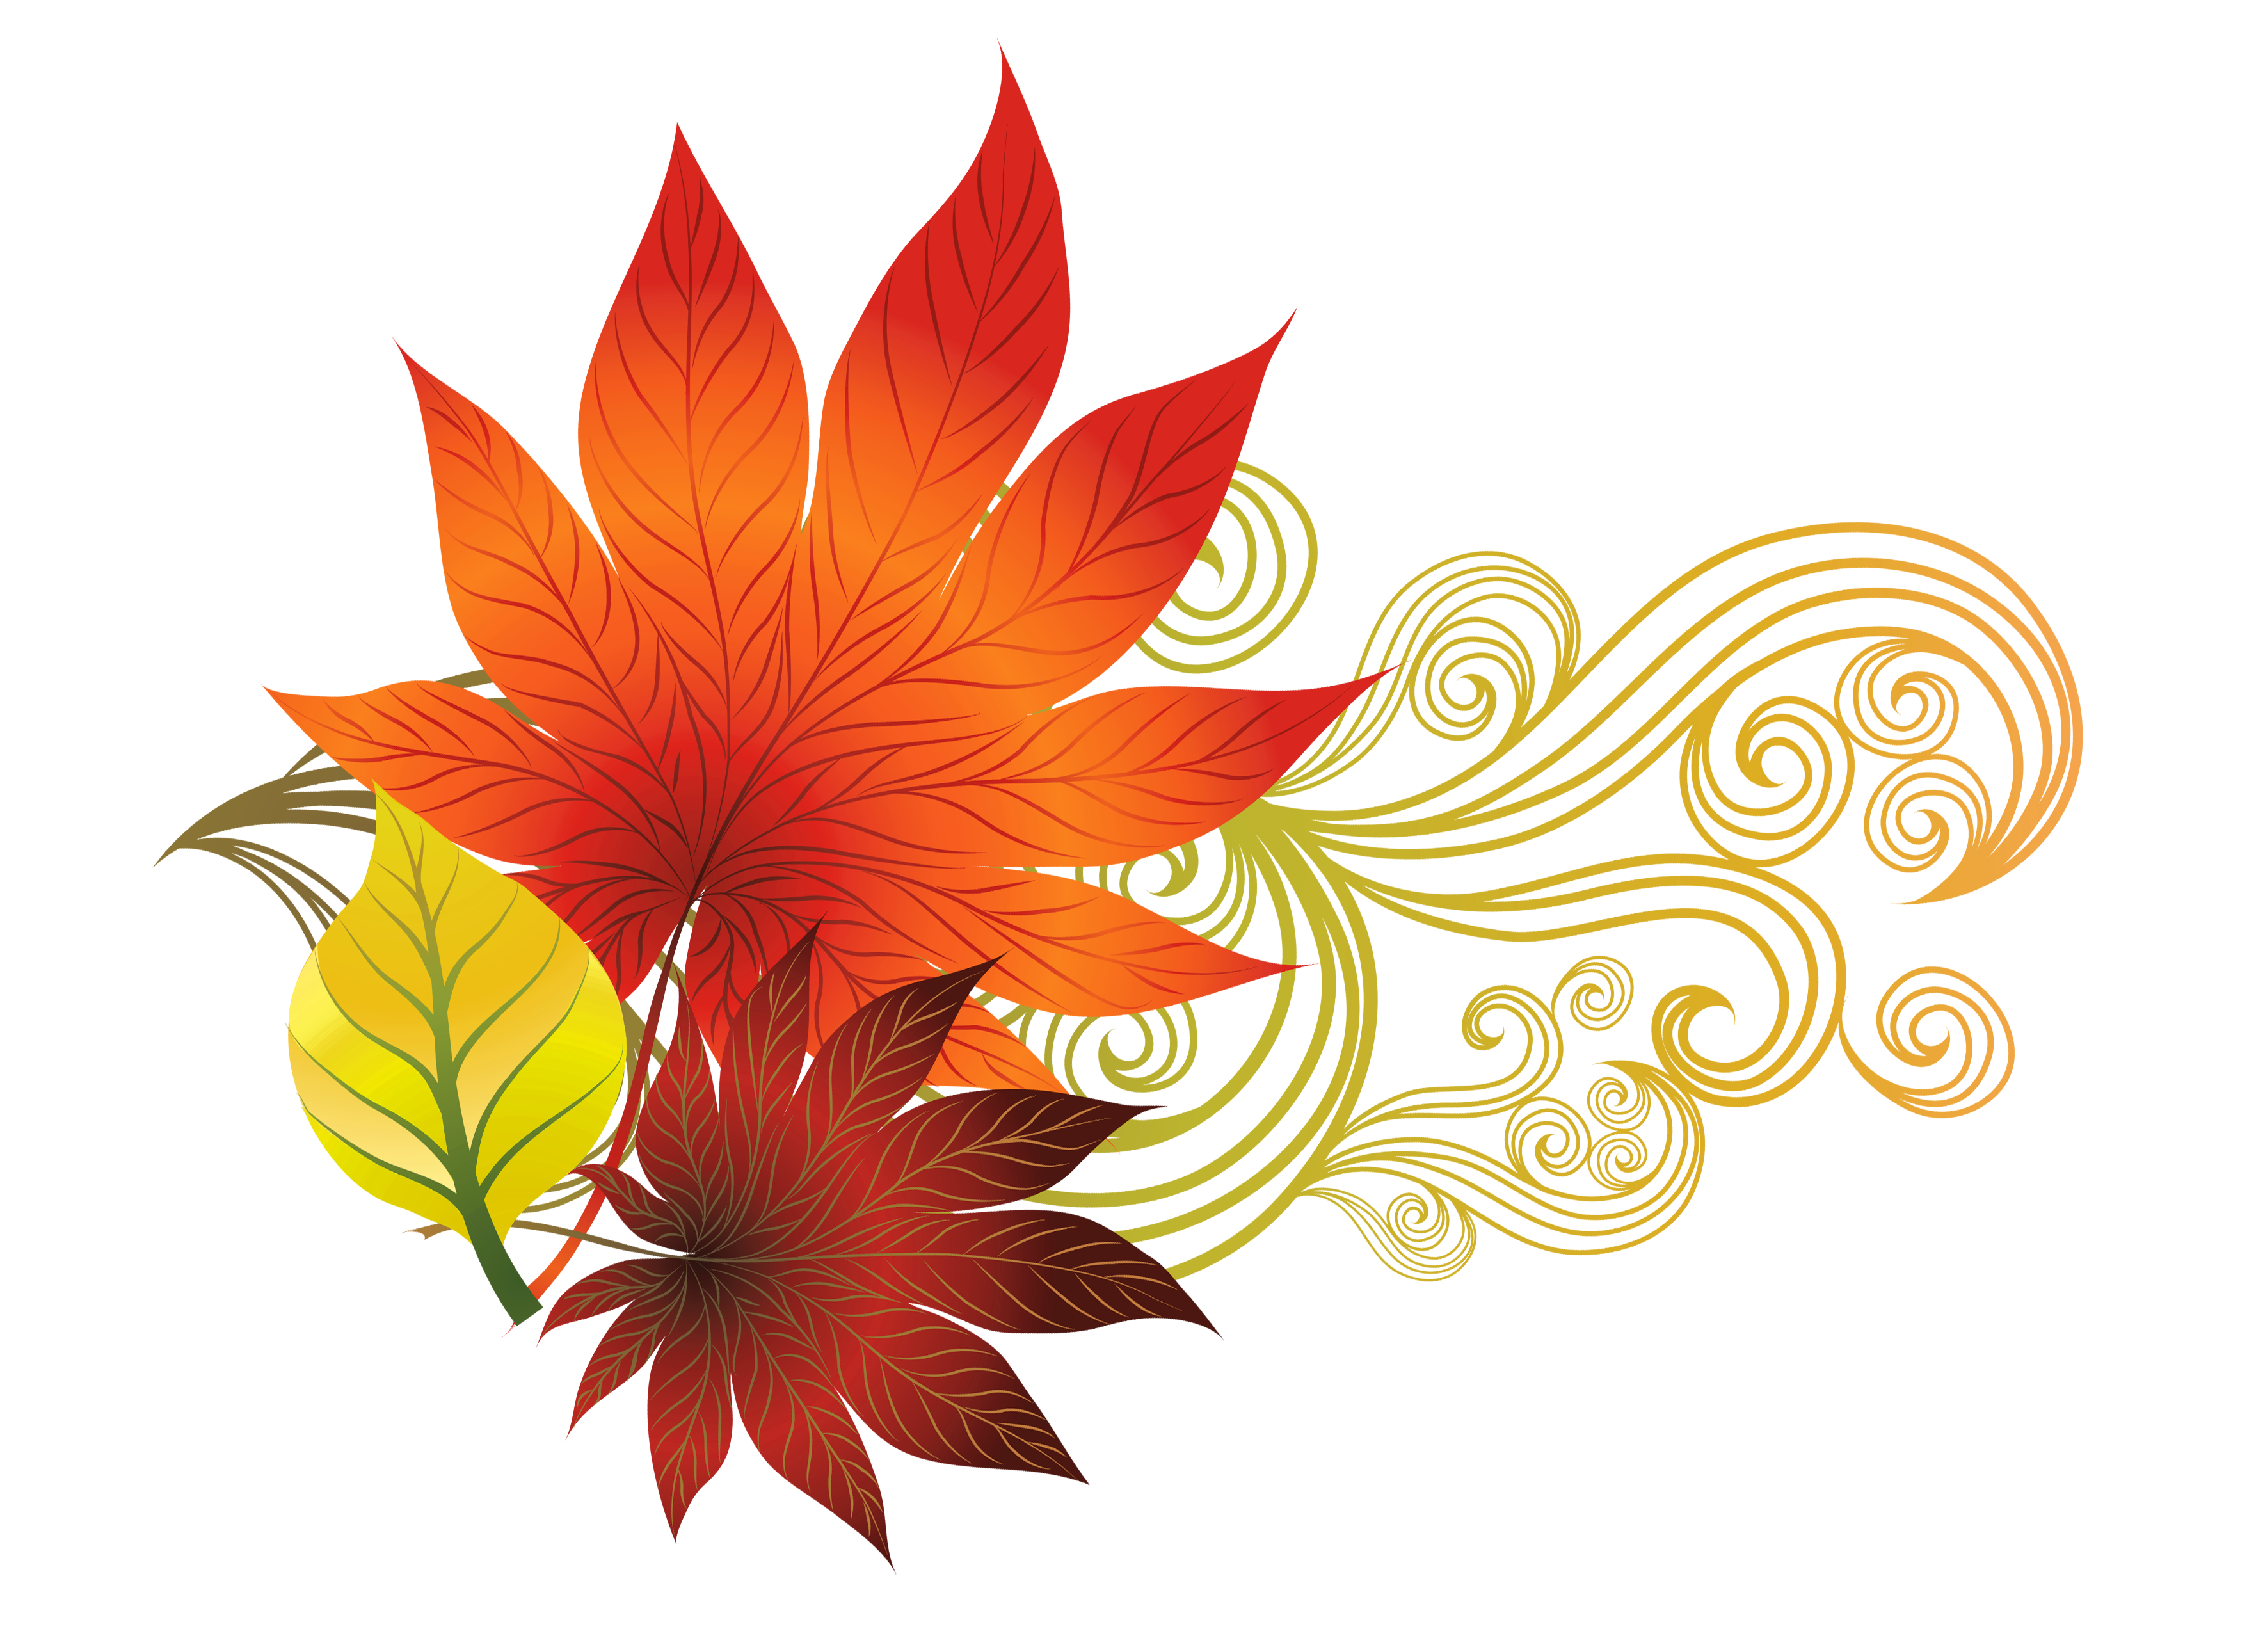 Falling flower png. Fall leaves decoration clipart